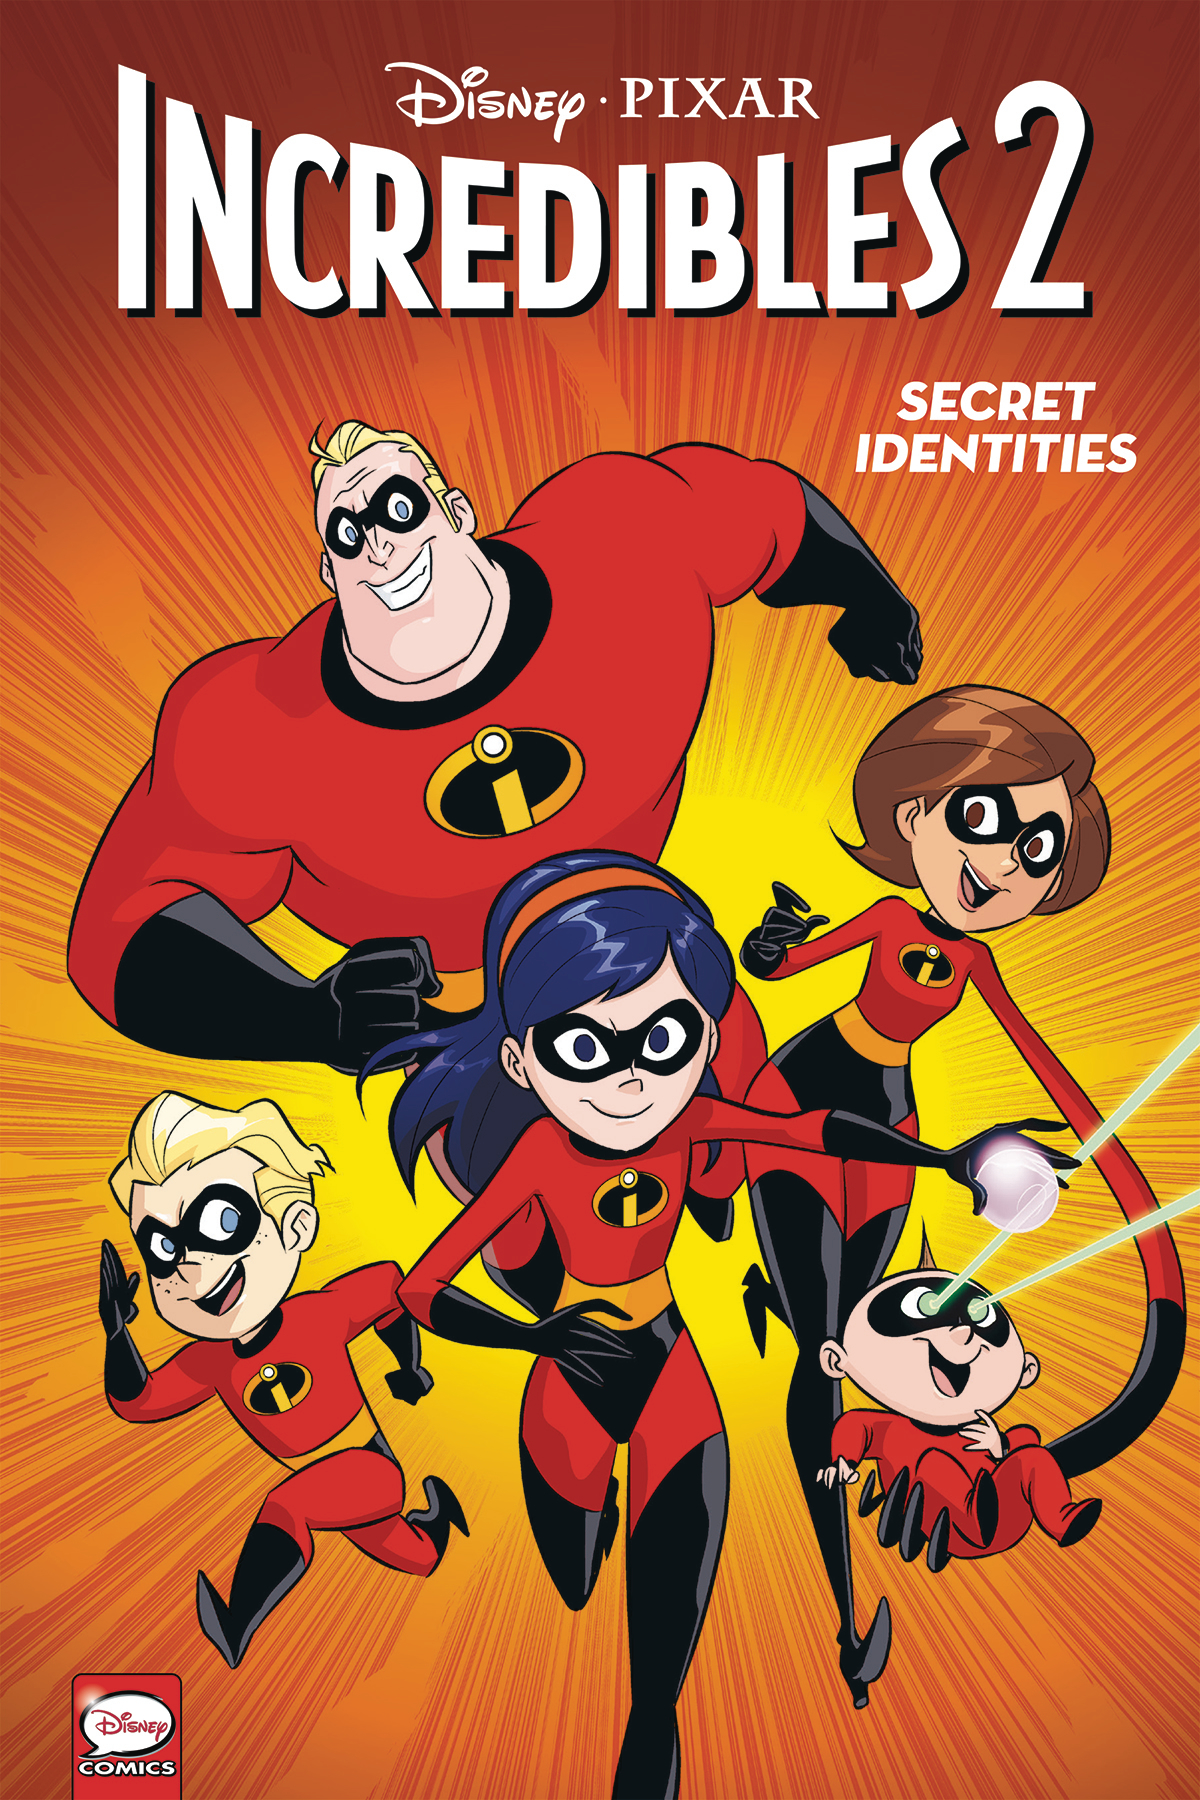 DISNEY PIXAR INCREDIBLES 2 TP VOL 02 SECRET IDENTITIES